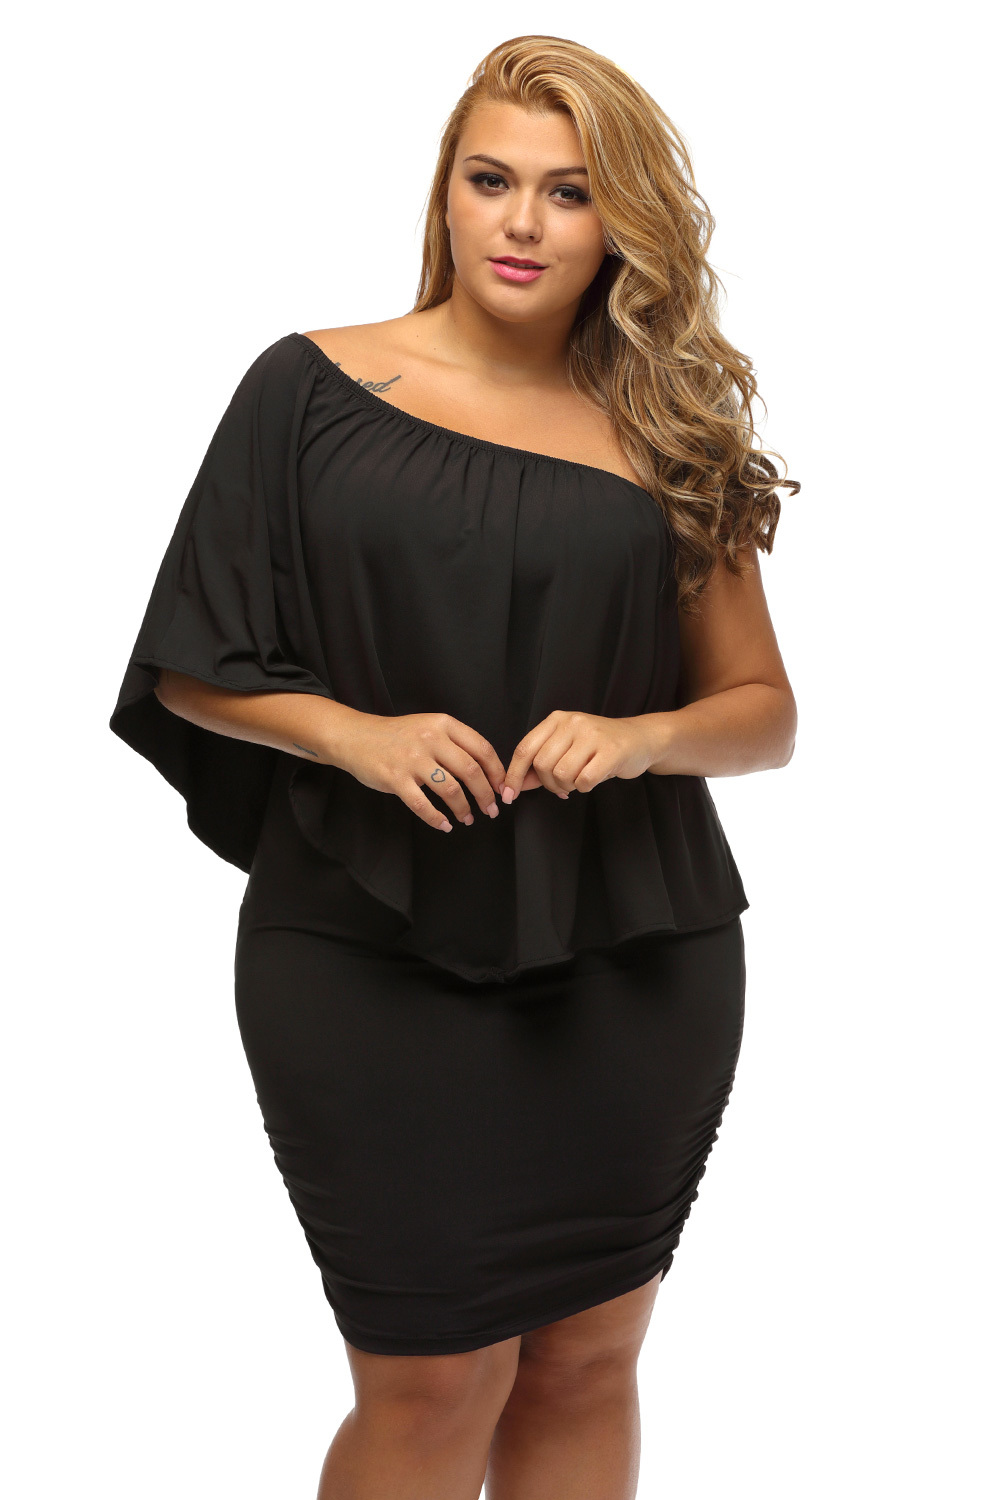 Fun, on trend plus size clothing for women sizes 14 and up. Plus size fashion clothing including tops, pants, dresses, coats, suits, boots and more.